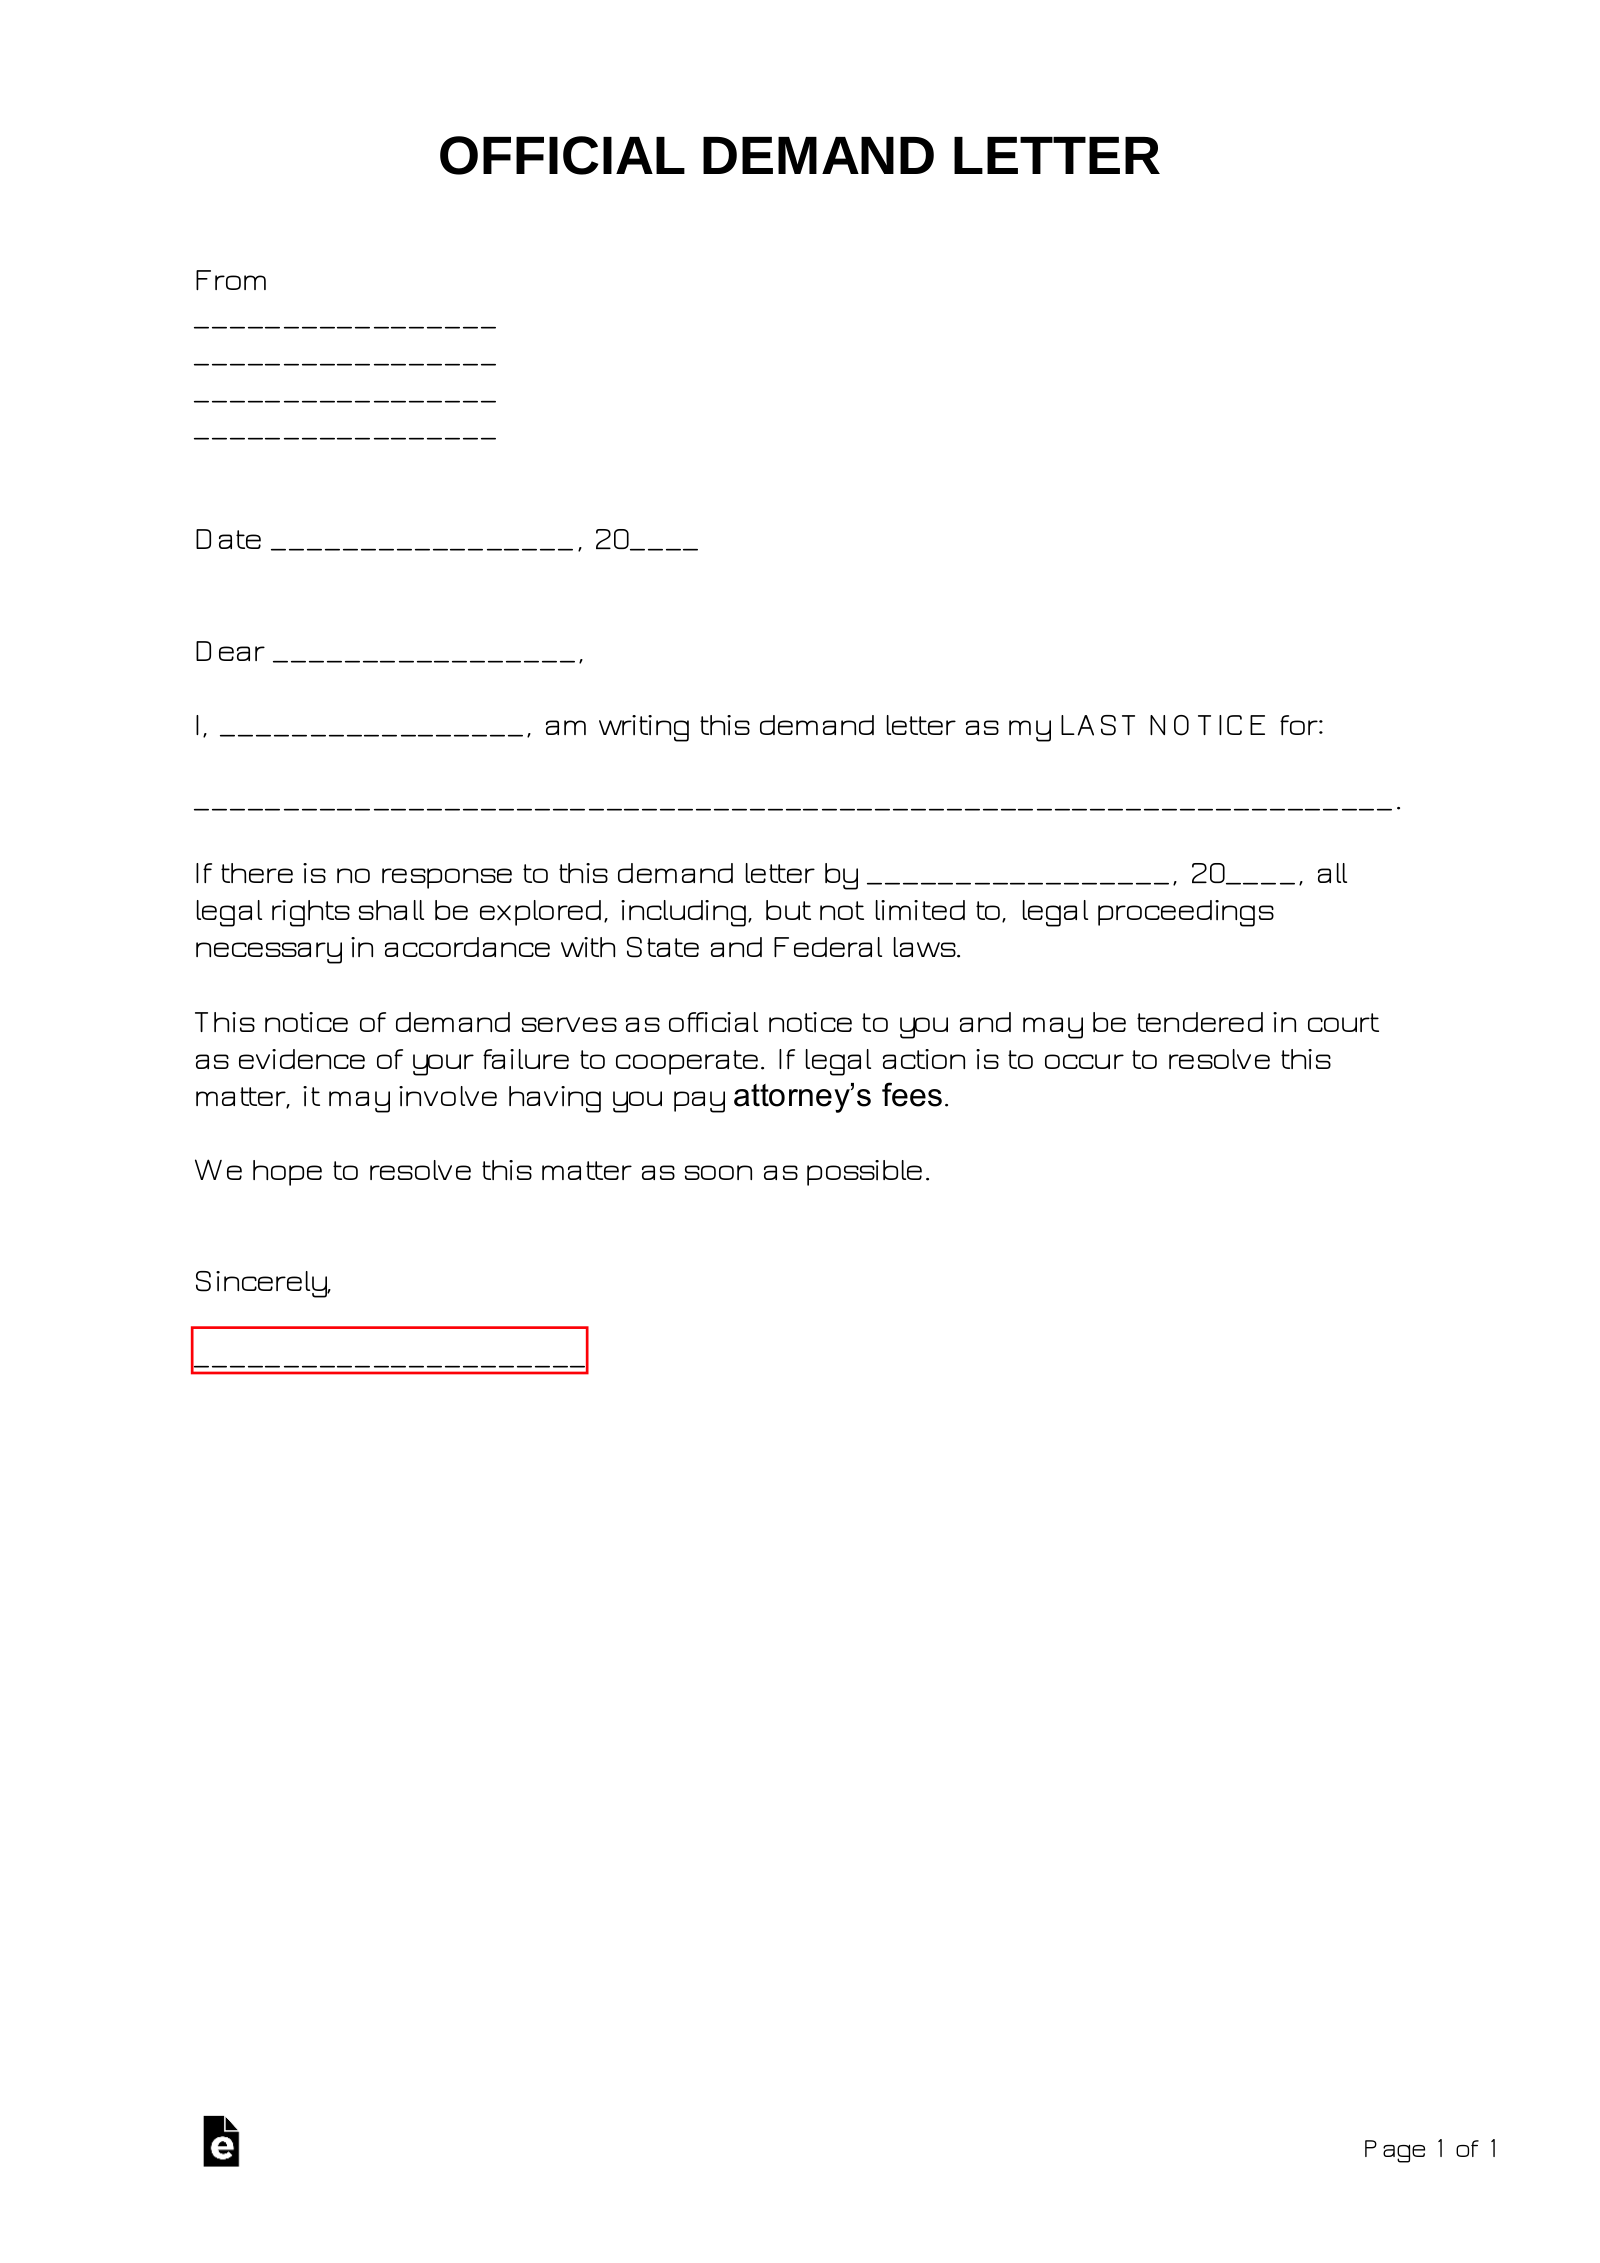 Free Demand Letter Templates All Types With Samples Word Pdf Eforms